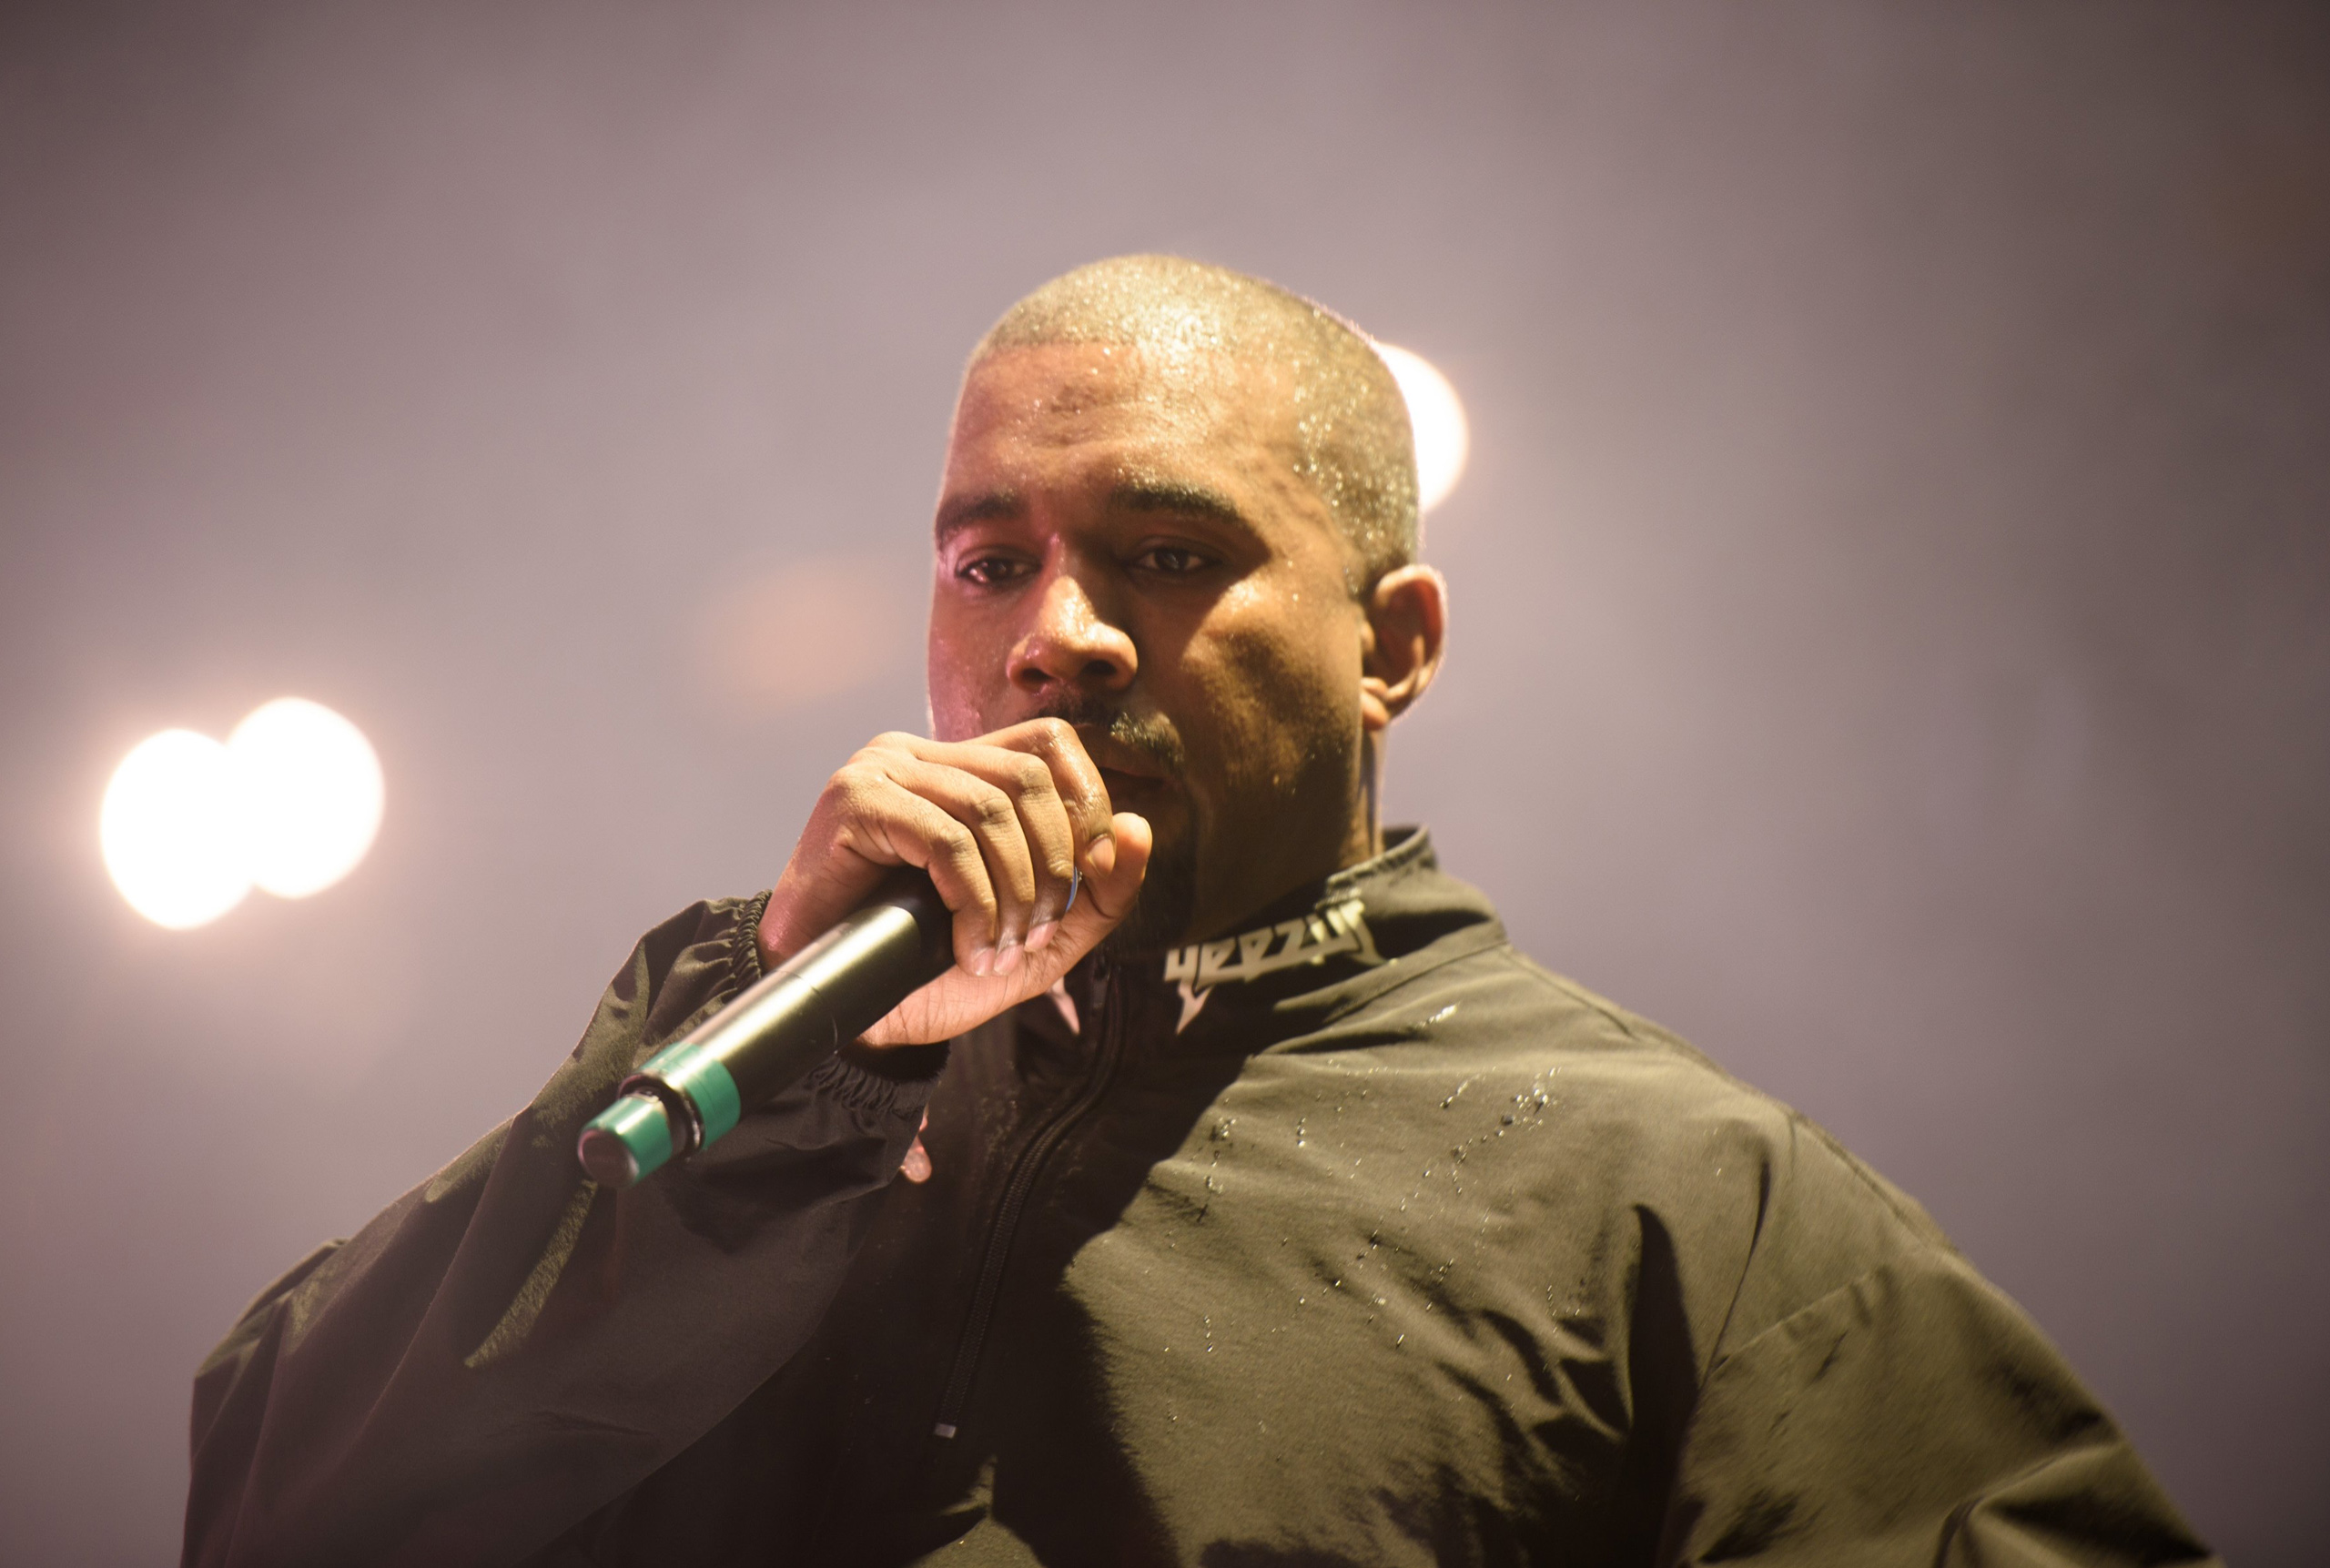 Kanye West performs at the 2016 Hot 97 Summer Jam at MetLife Stadium in East Rutherford, New Jersey on June 5, 2016.